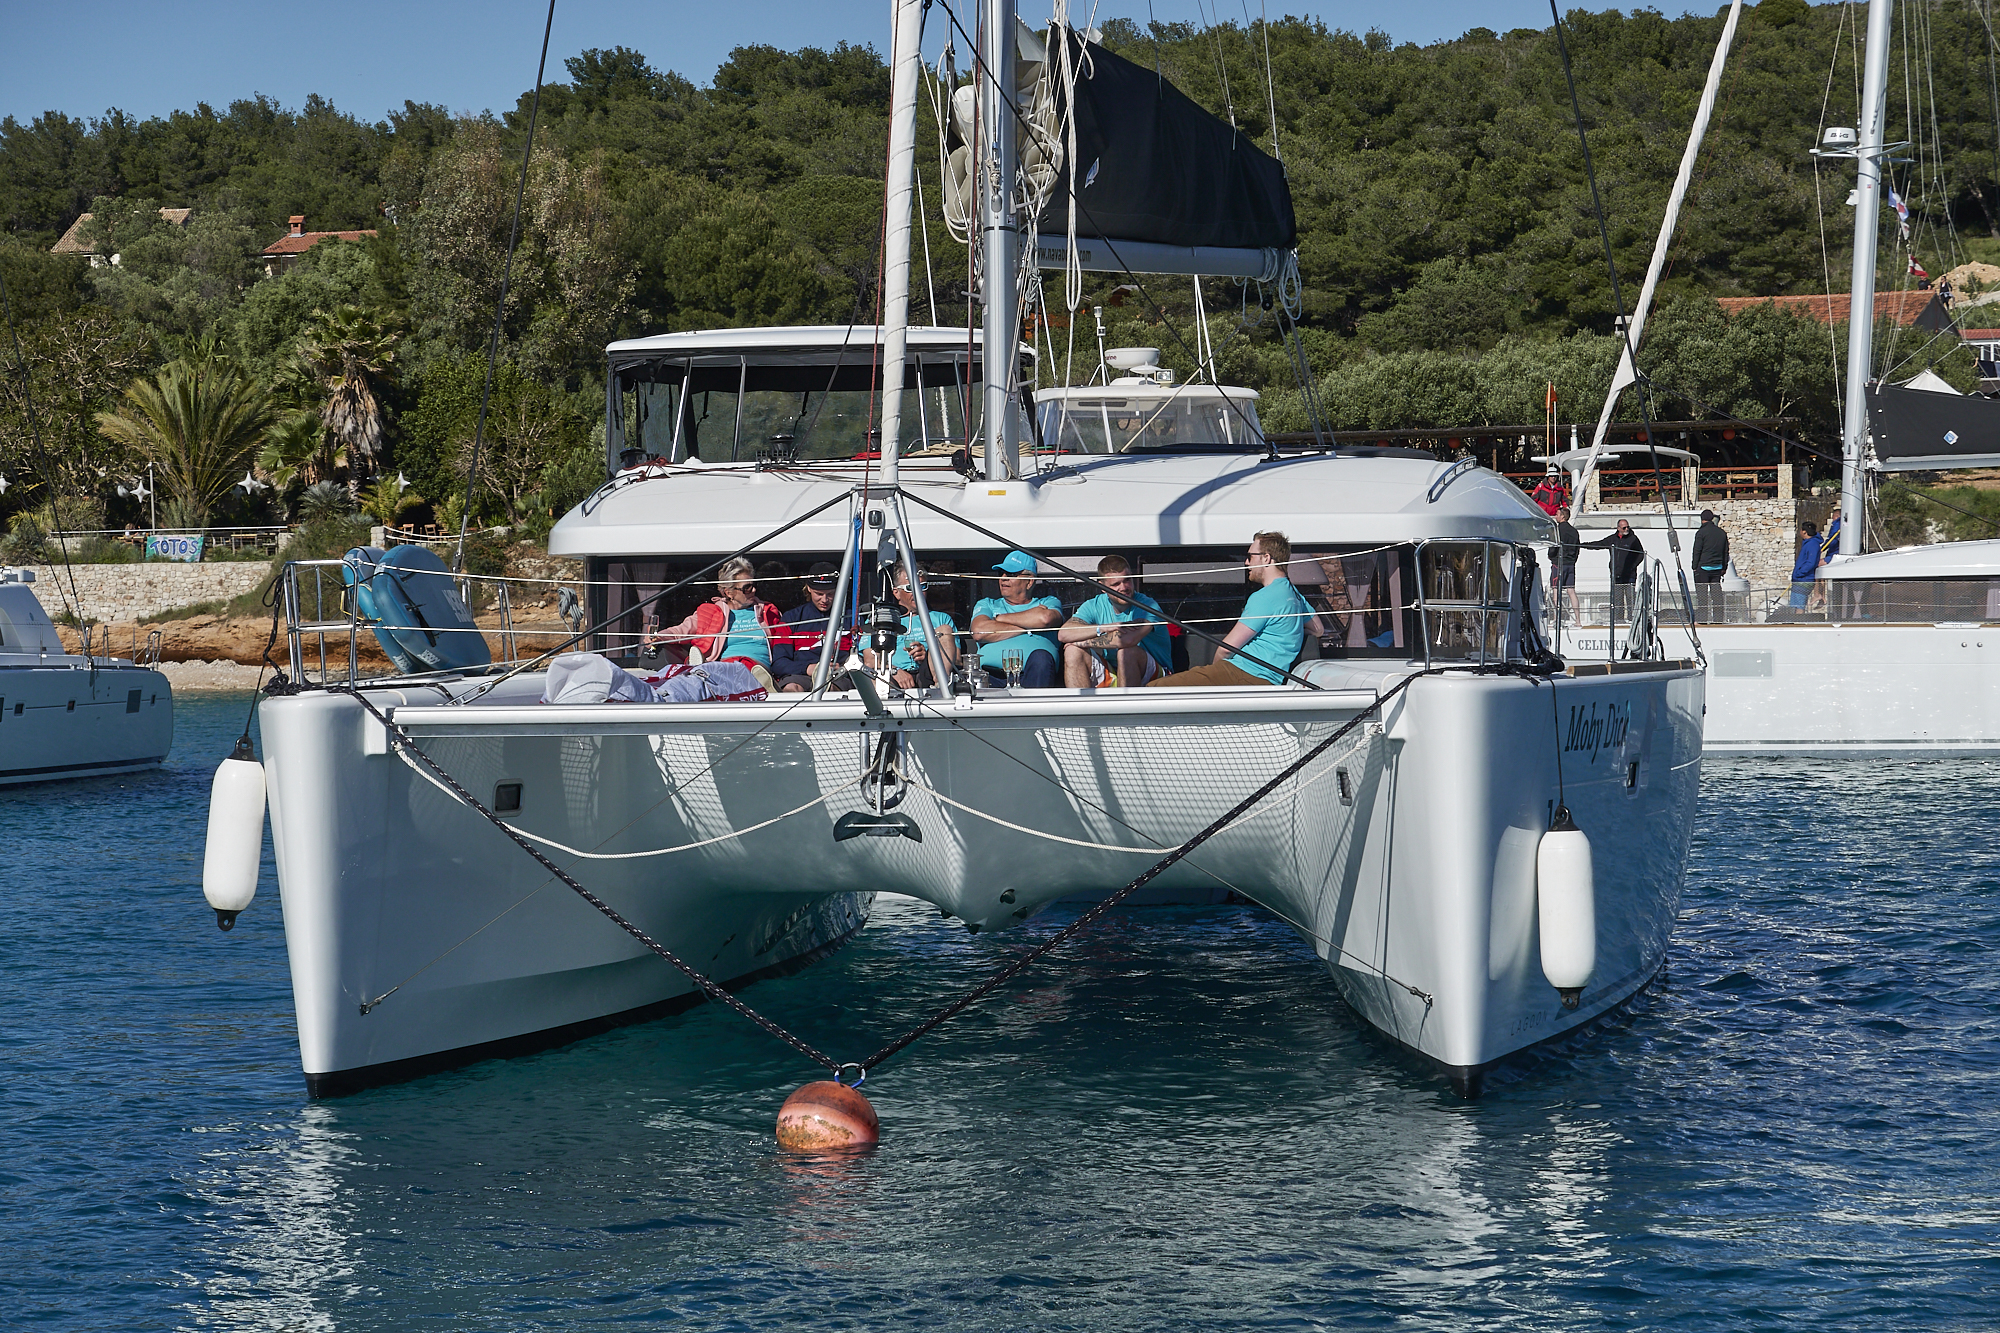 Lagoon 450 Sport (2018) equipped with generator, A (MOBY DICK)  - 8